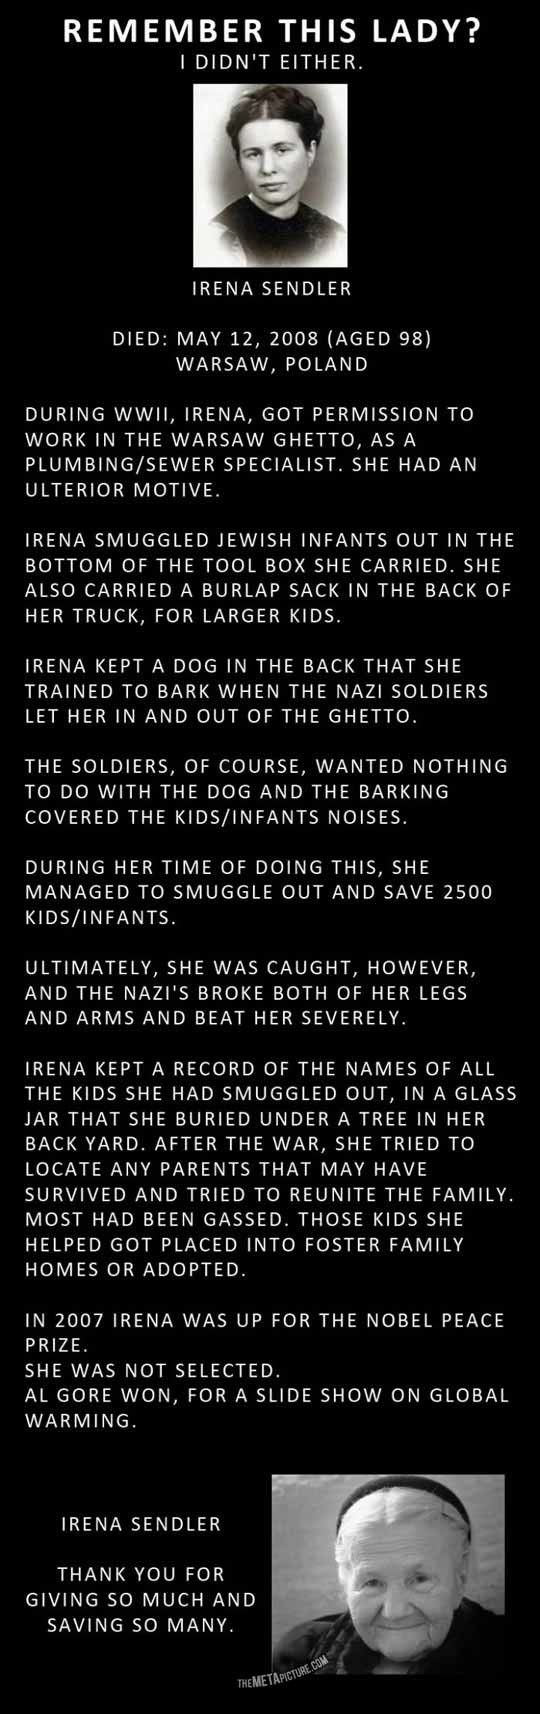 True heroism. Pretty cool, but al gore seriously, how does he sleep at night?